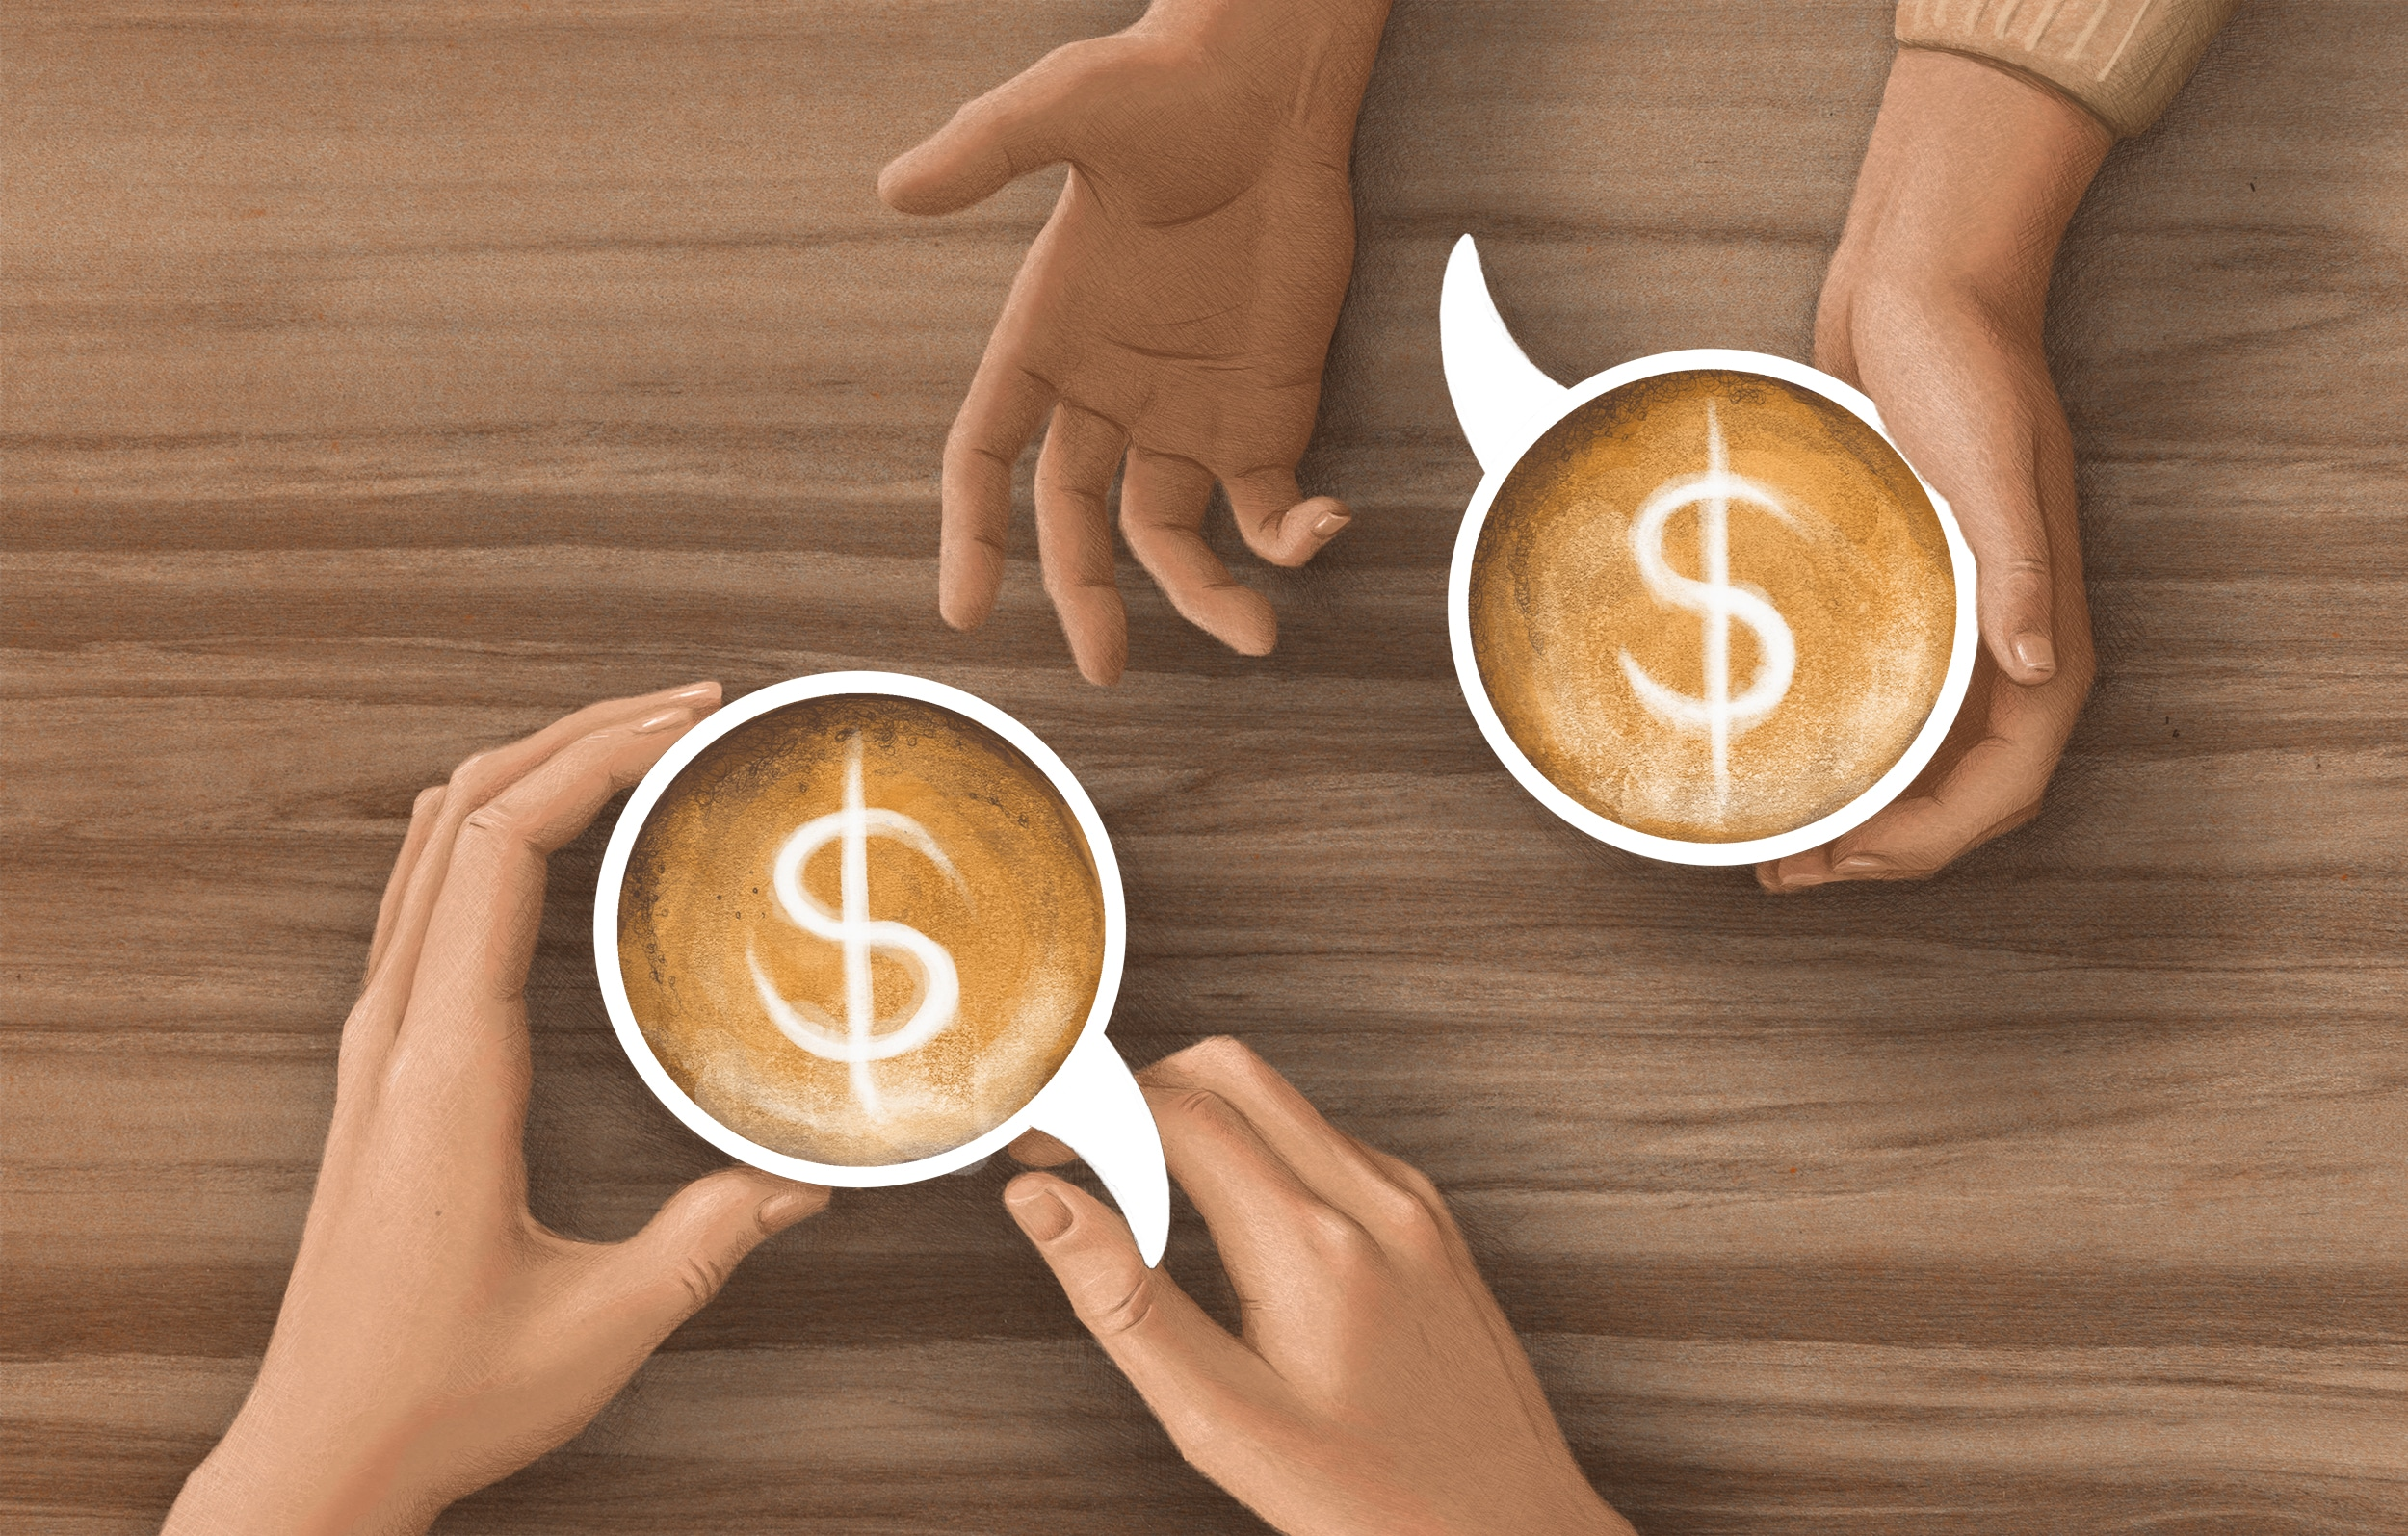 Top-Down view of two pairs of hands holding coffee cups and gesturing as if in conversation. The rims of the coffee cups are shaped like speech bubbles, and the latte art depicts dollar signs.